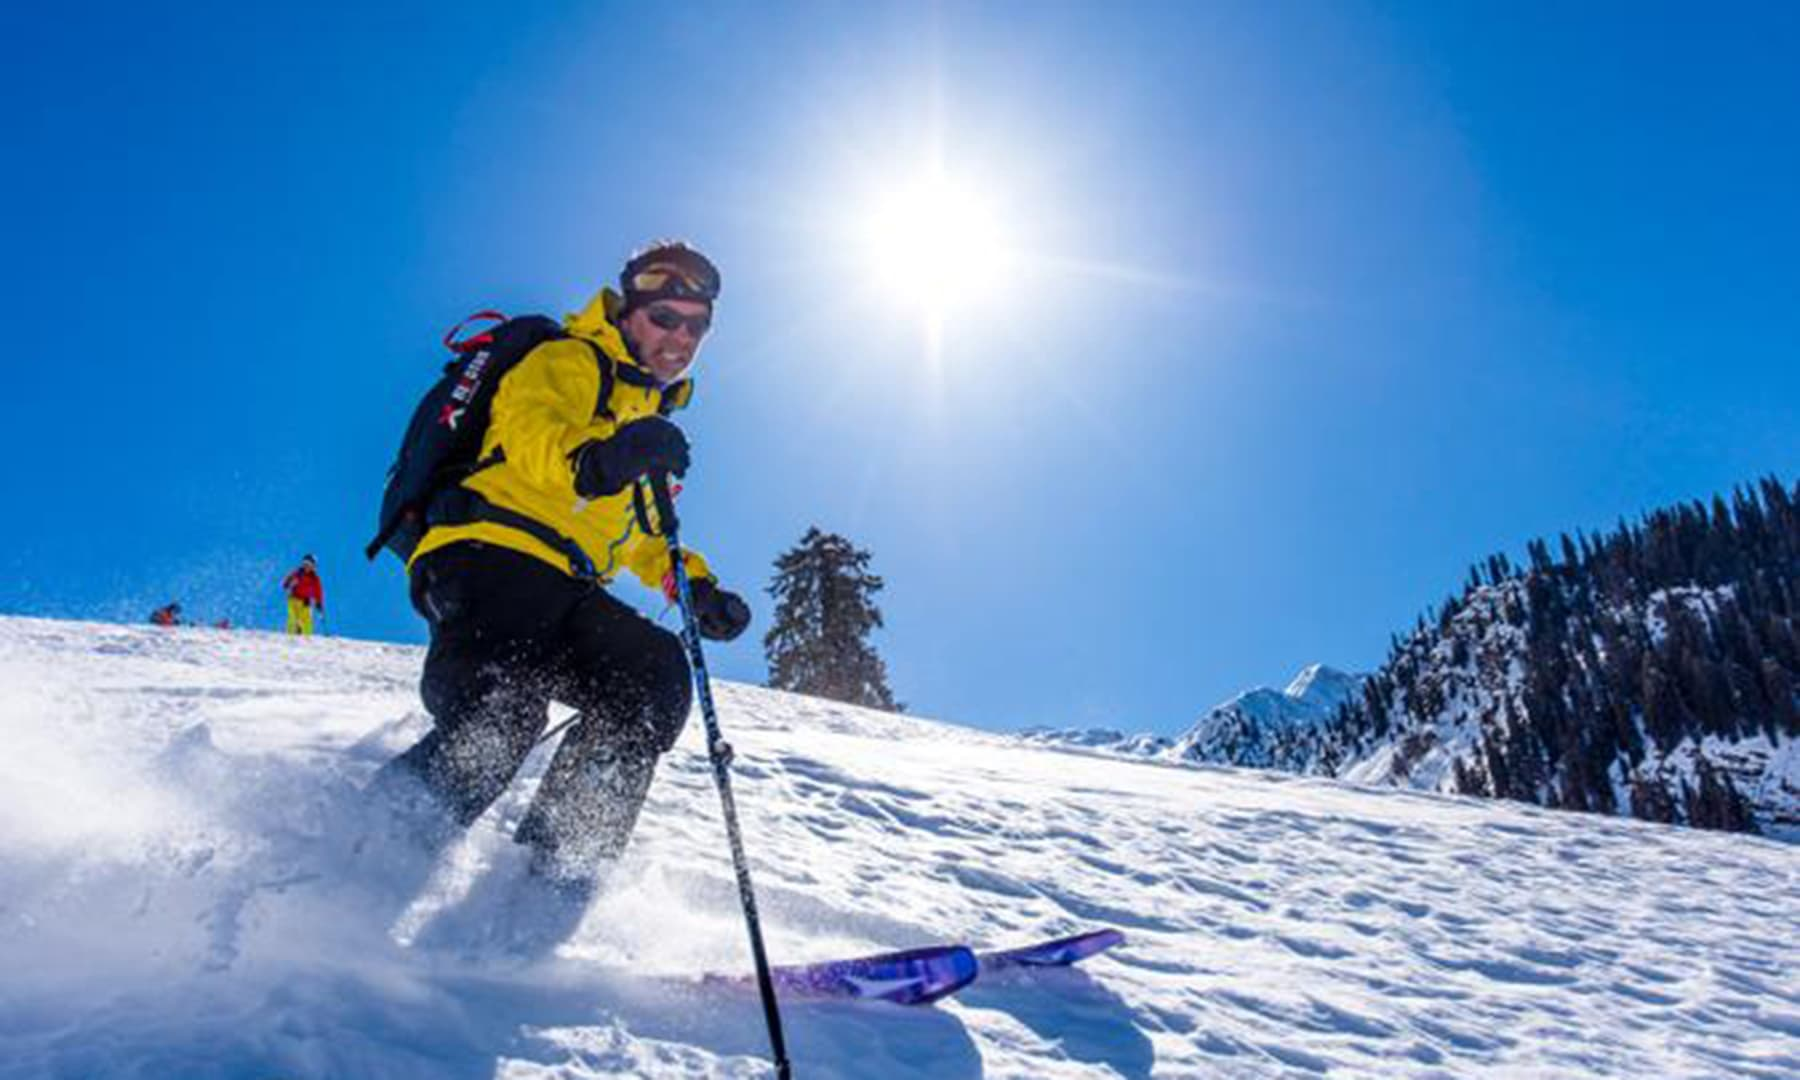 The trip was an effort to promote tourism and winter sports in Pakistan. — Photo courtesy ISPR